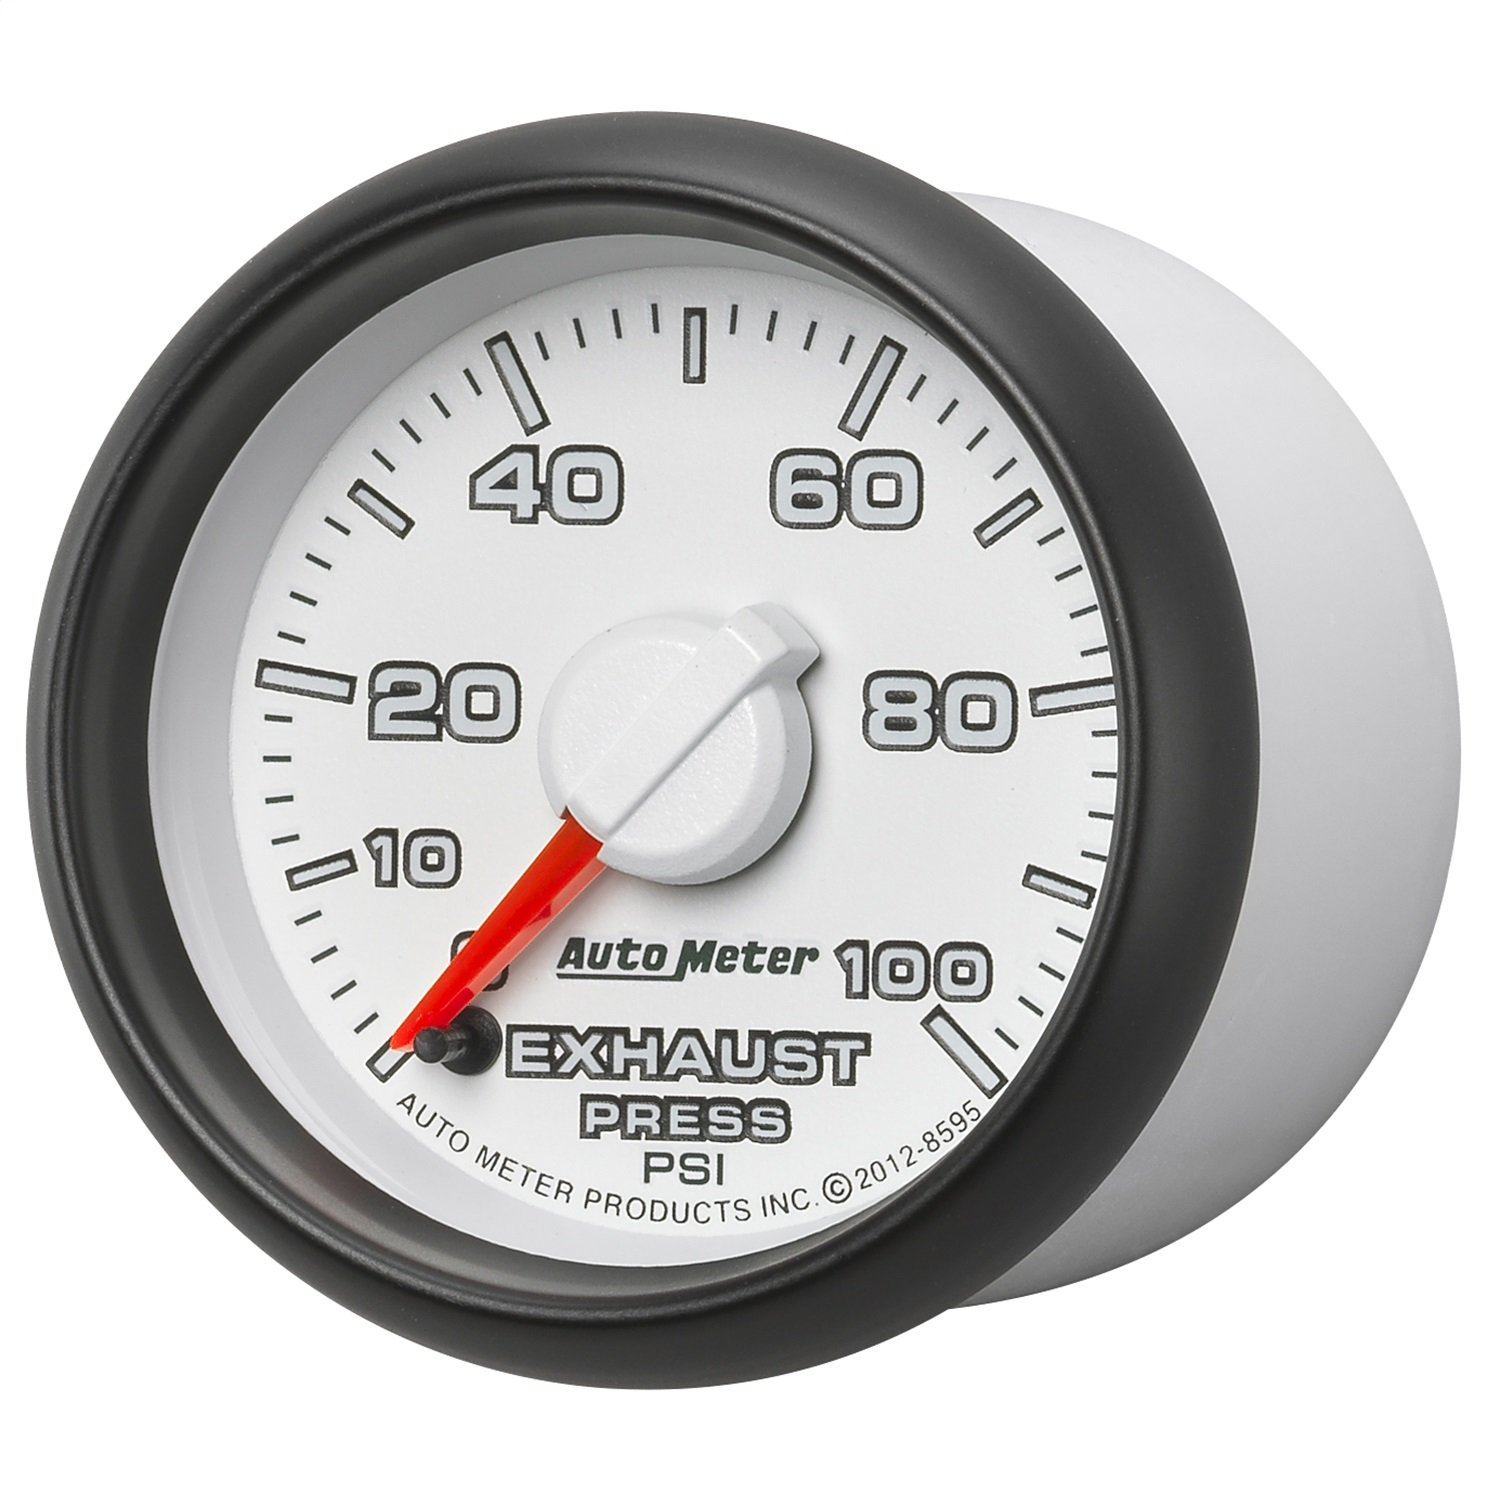 Auto Meter (8595) Dodge Match 2-1/16'' 0-100 PSI Full Sweep Electric Exhaust Pressure Gauge by Auto Meter (Image #3)